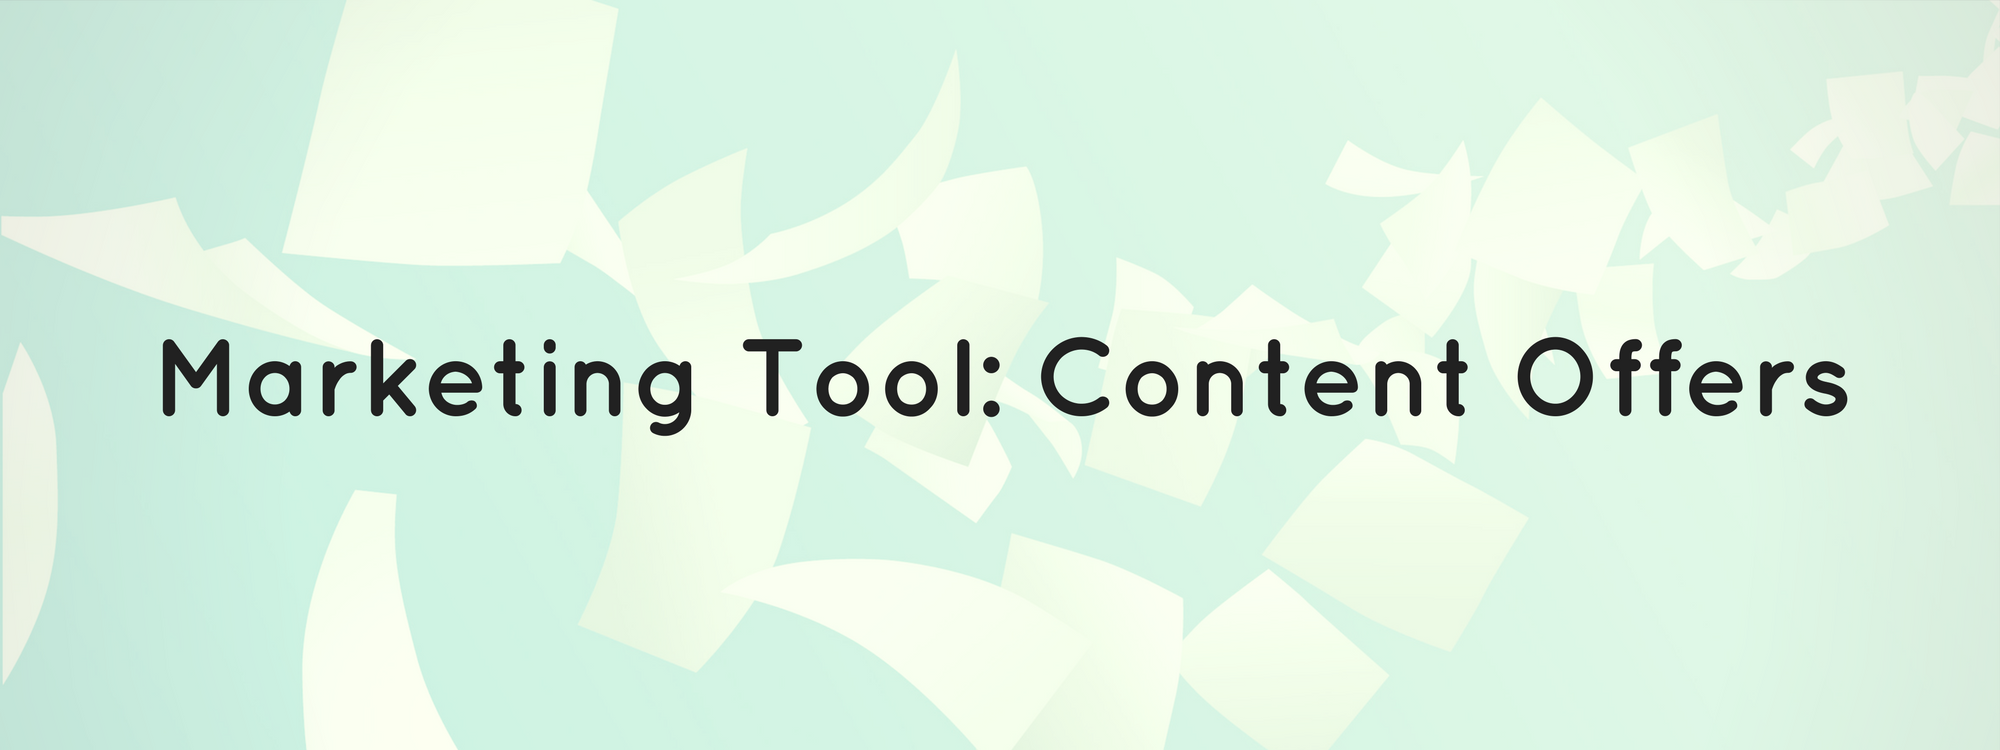 marketing tool content offers